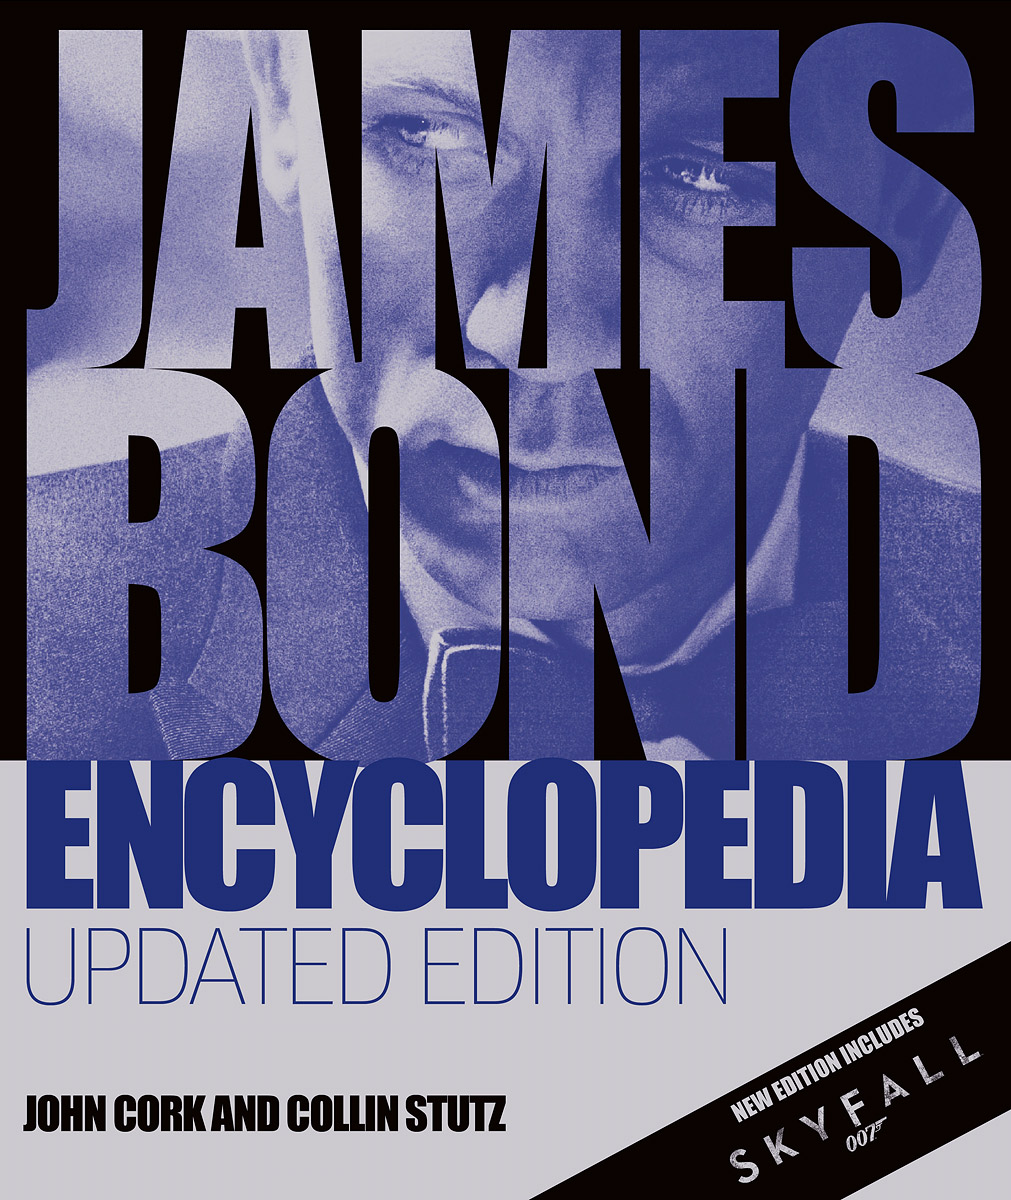 James Bond Encyclopedia mars up close inside the curiosity mission